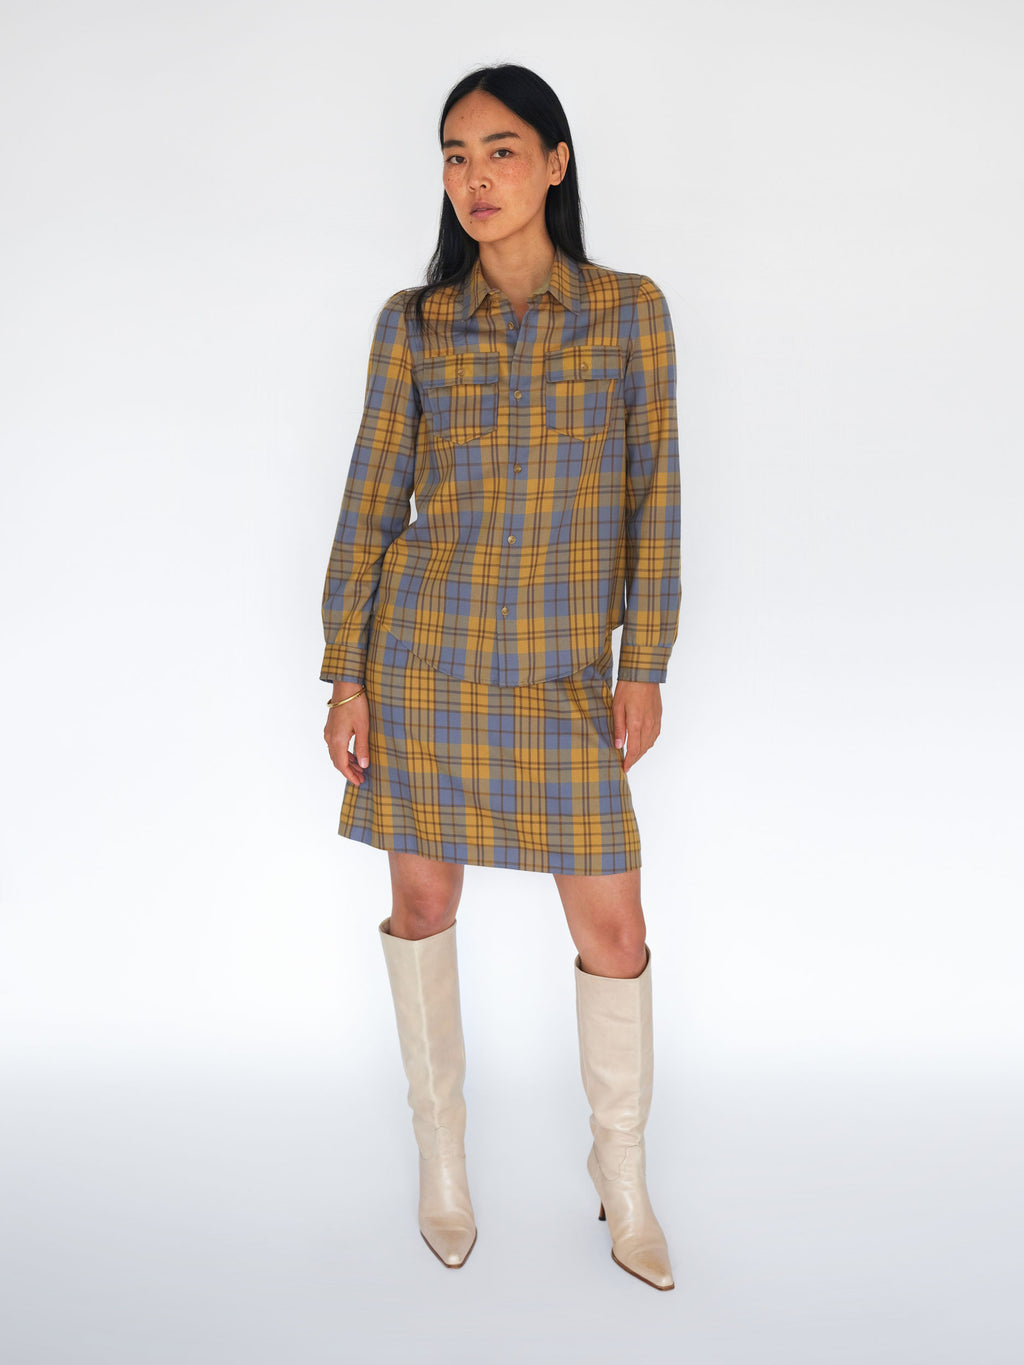 Vintage APC checked twin set preclothed